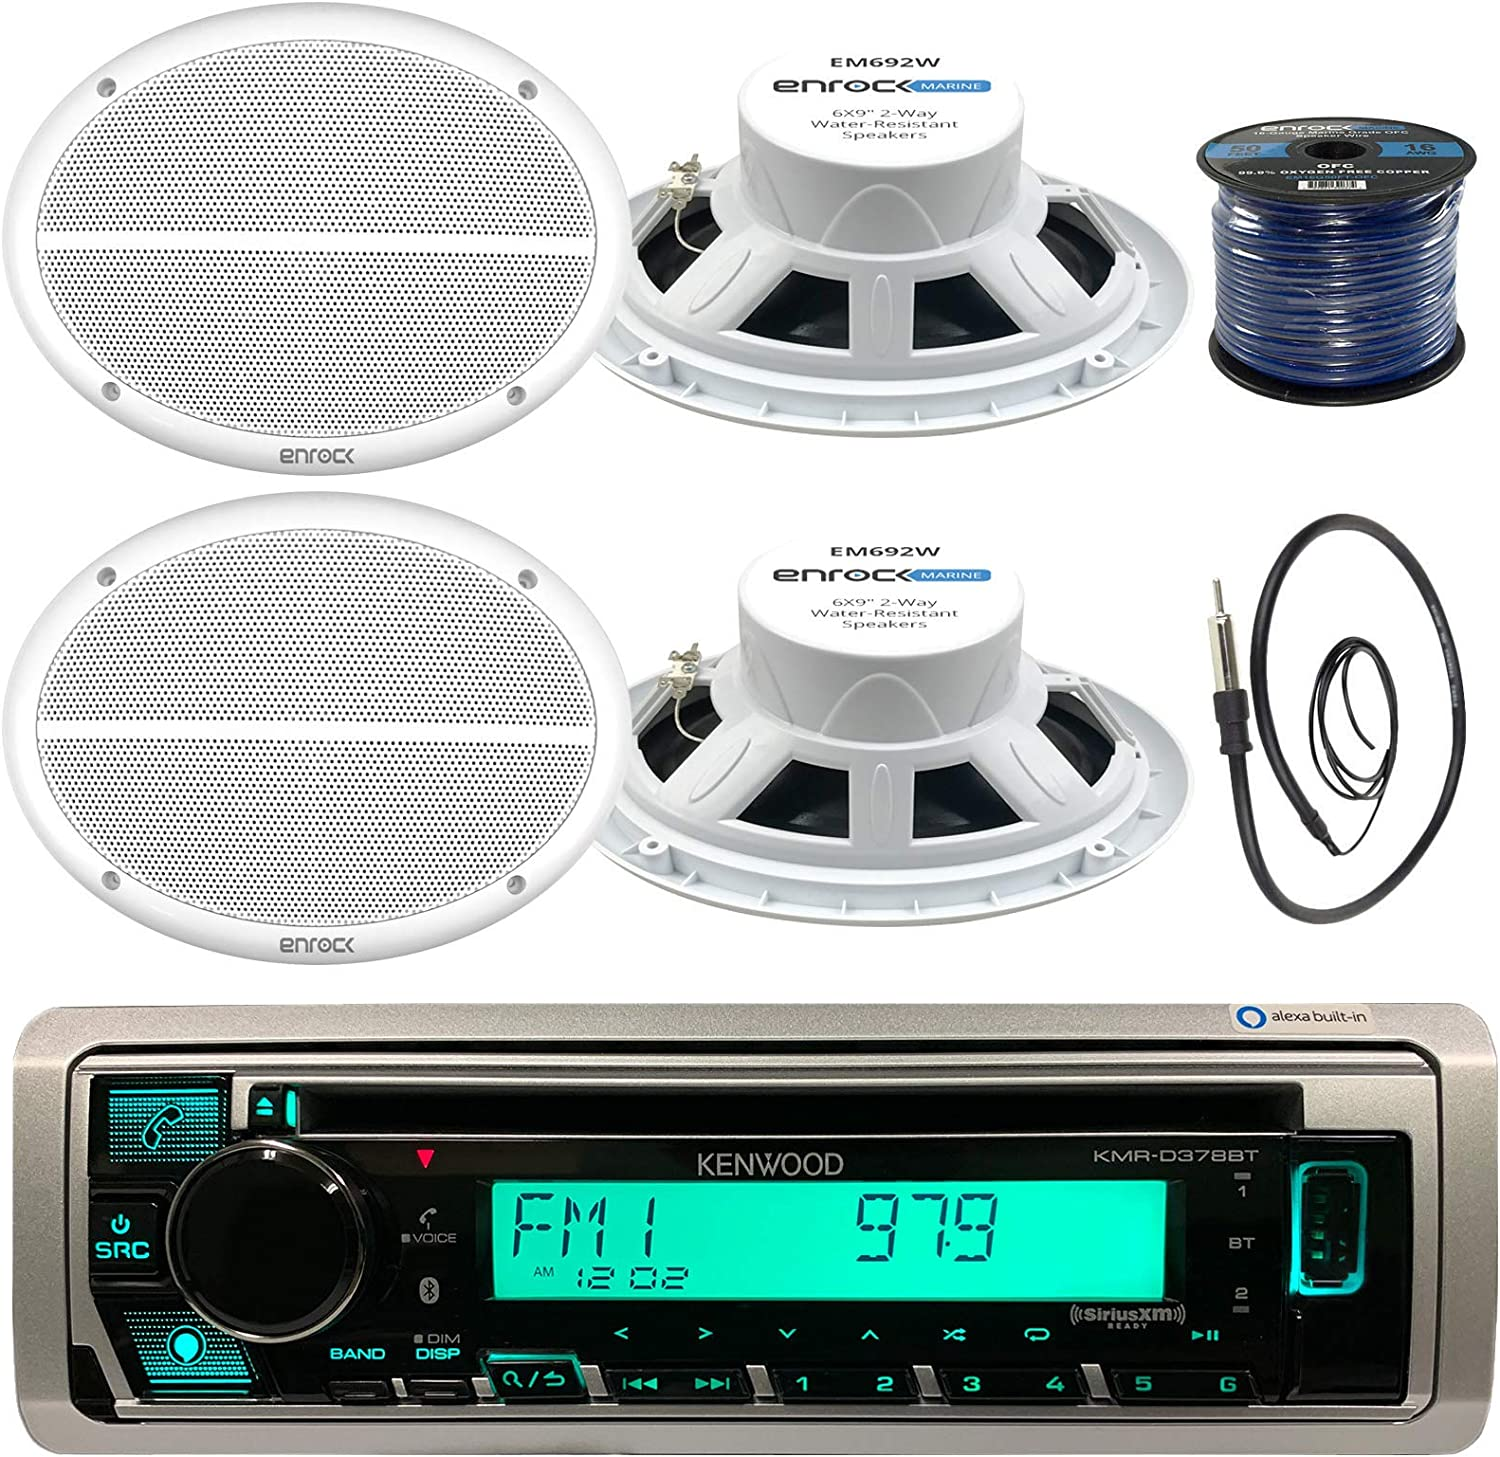 16g 50FT Marine Speaker Wire Kenwood Enrock KMR-D372BT AQ69CXS EM16G50FT-OFC EKMR1 Kenwood KMR-D375BT in-Dash Marine Boat Audio Bluetooth CD Player Receiver Bundle Combo with 4X 500 Watts 6X9-Inch 2-Way Marine Silver Coaxial Speakers Radio Antenna